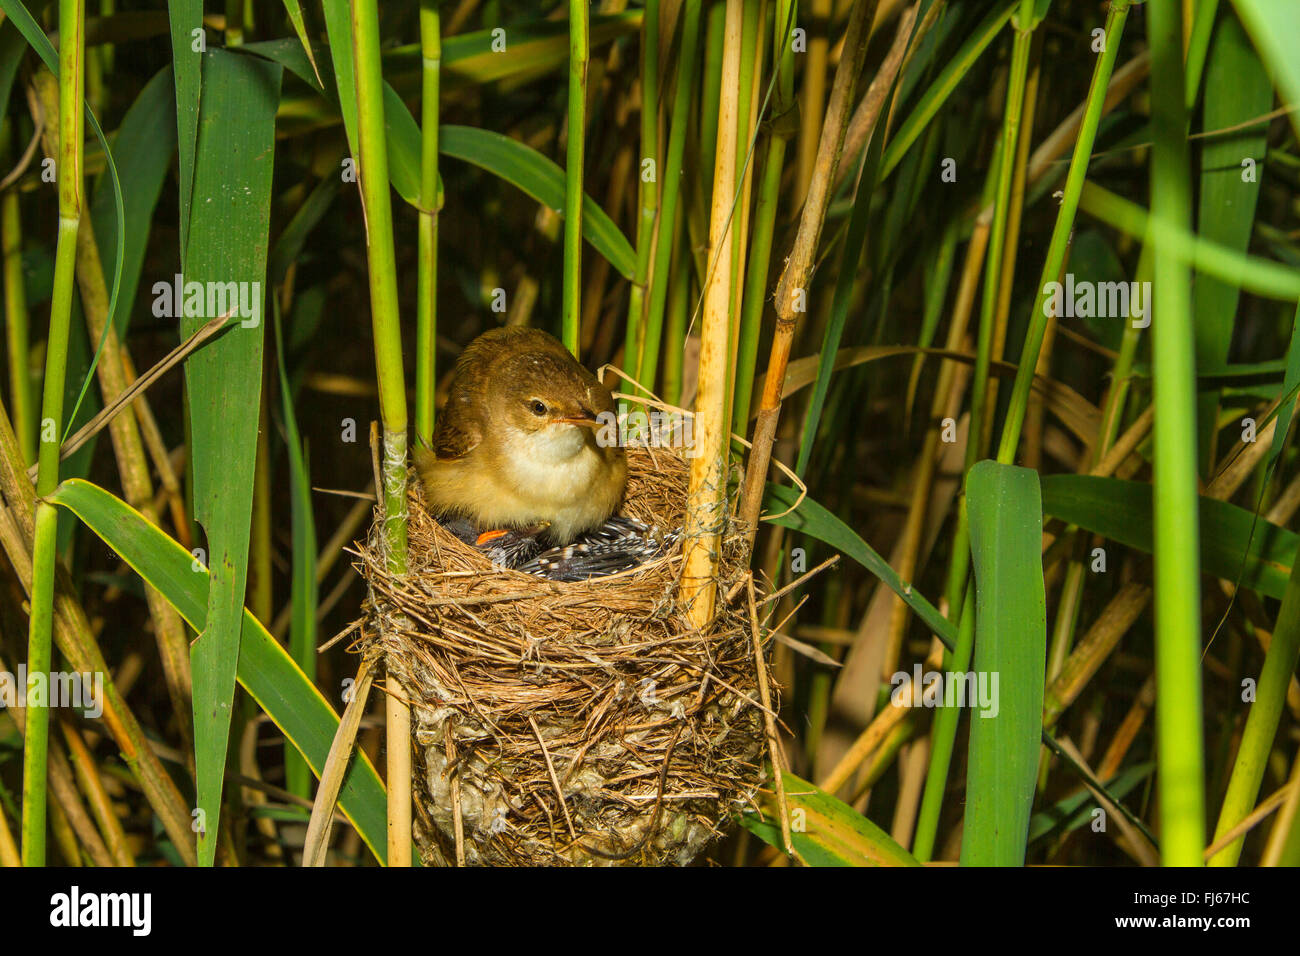 Eurasian cuckoo (Cuculus canorus), reed warbler gathering under the wings a six days old young cuckoo in the nest, - Stock Image